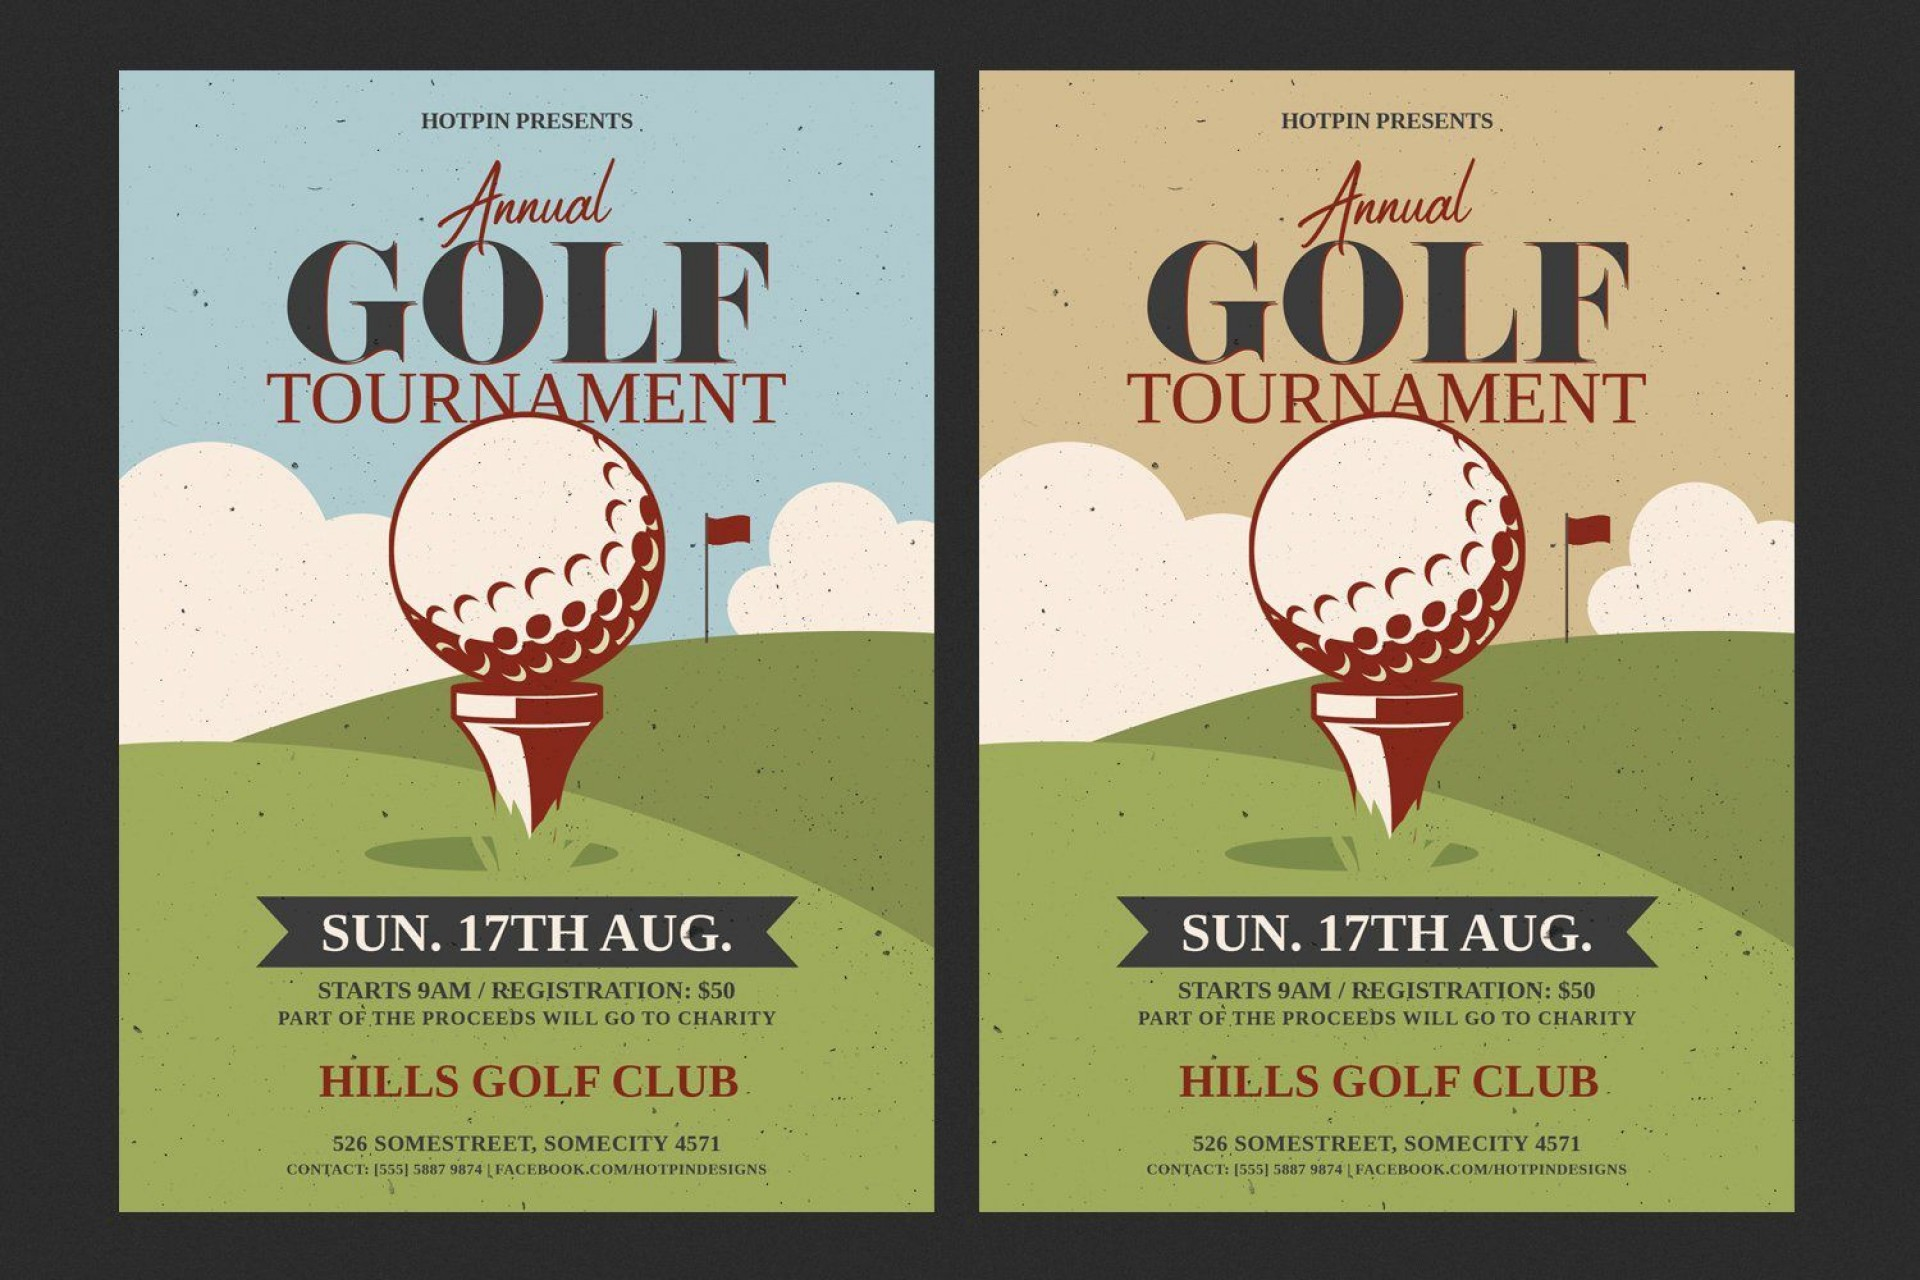 002 Surprising Free Charity Golf Tournament Flyer Template Example 1920